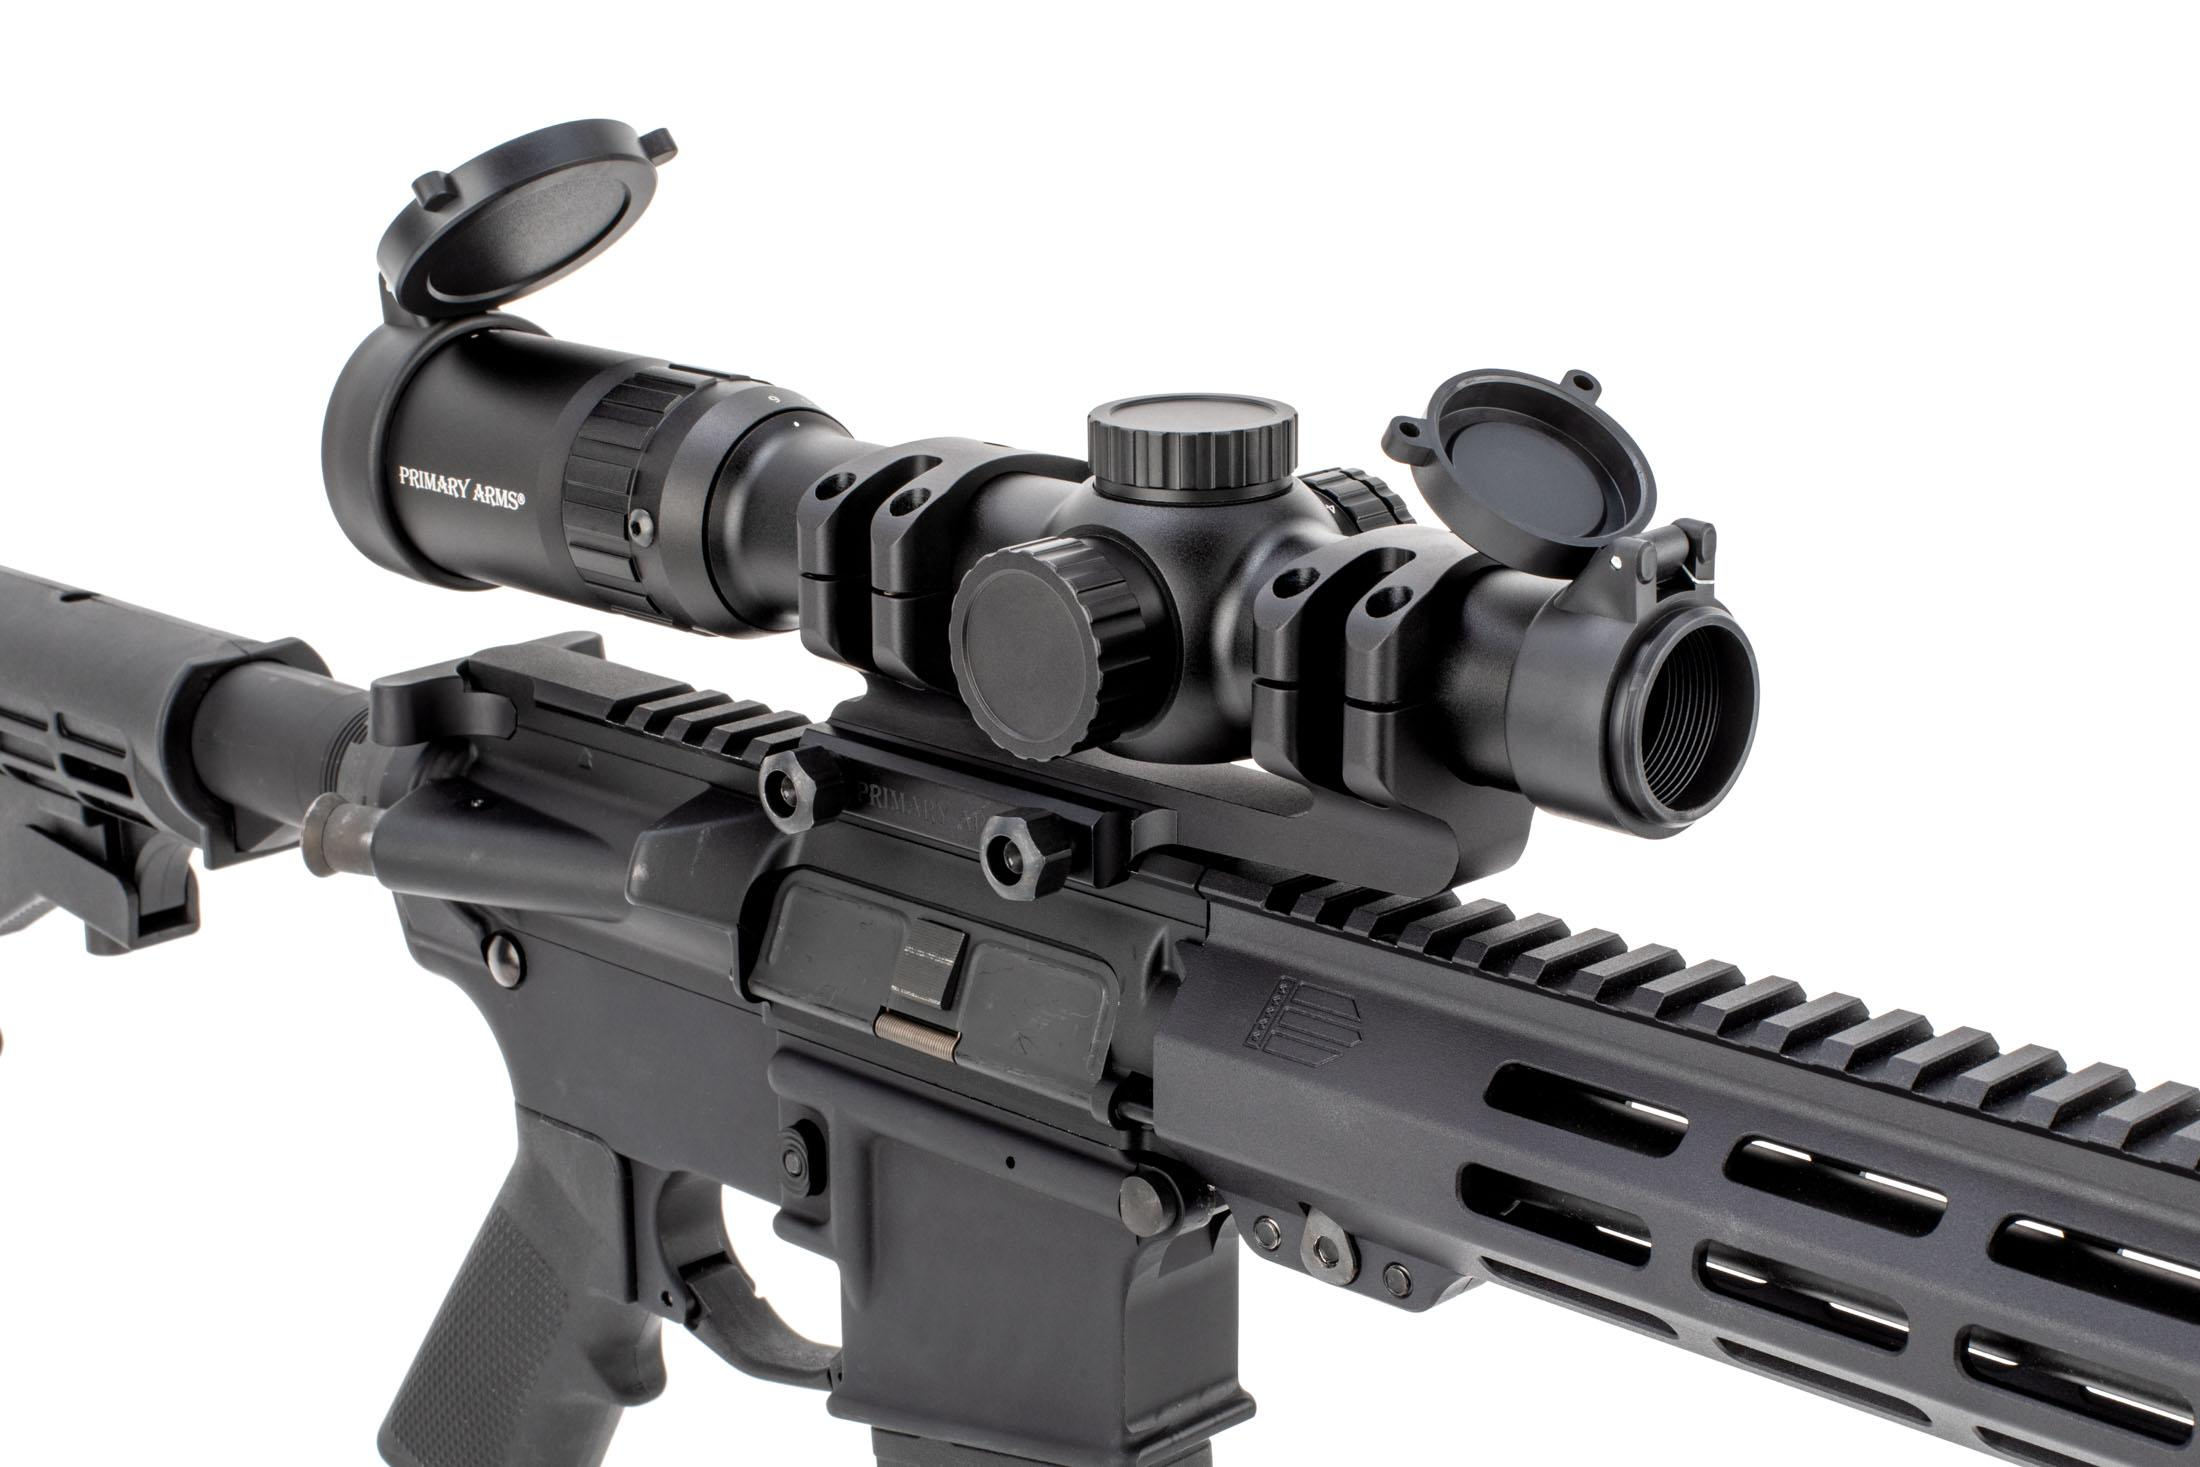 Primary Arms 1-6x24mm FFP ACSS Raptor 5.56 rifle scope includes flip up scope caps